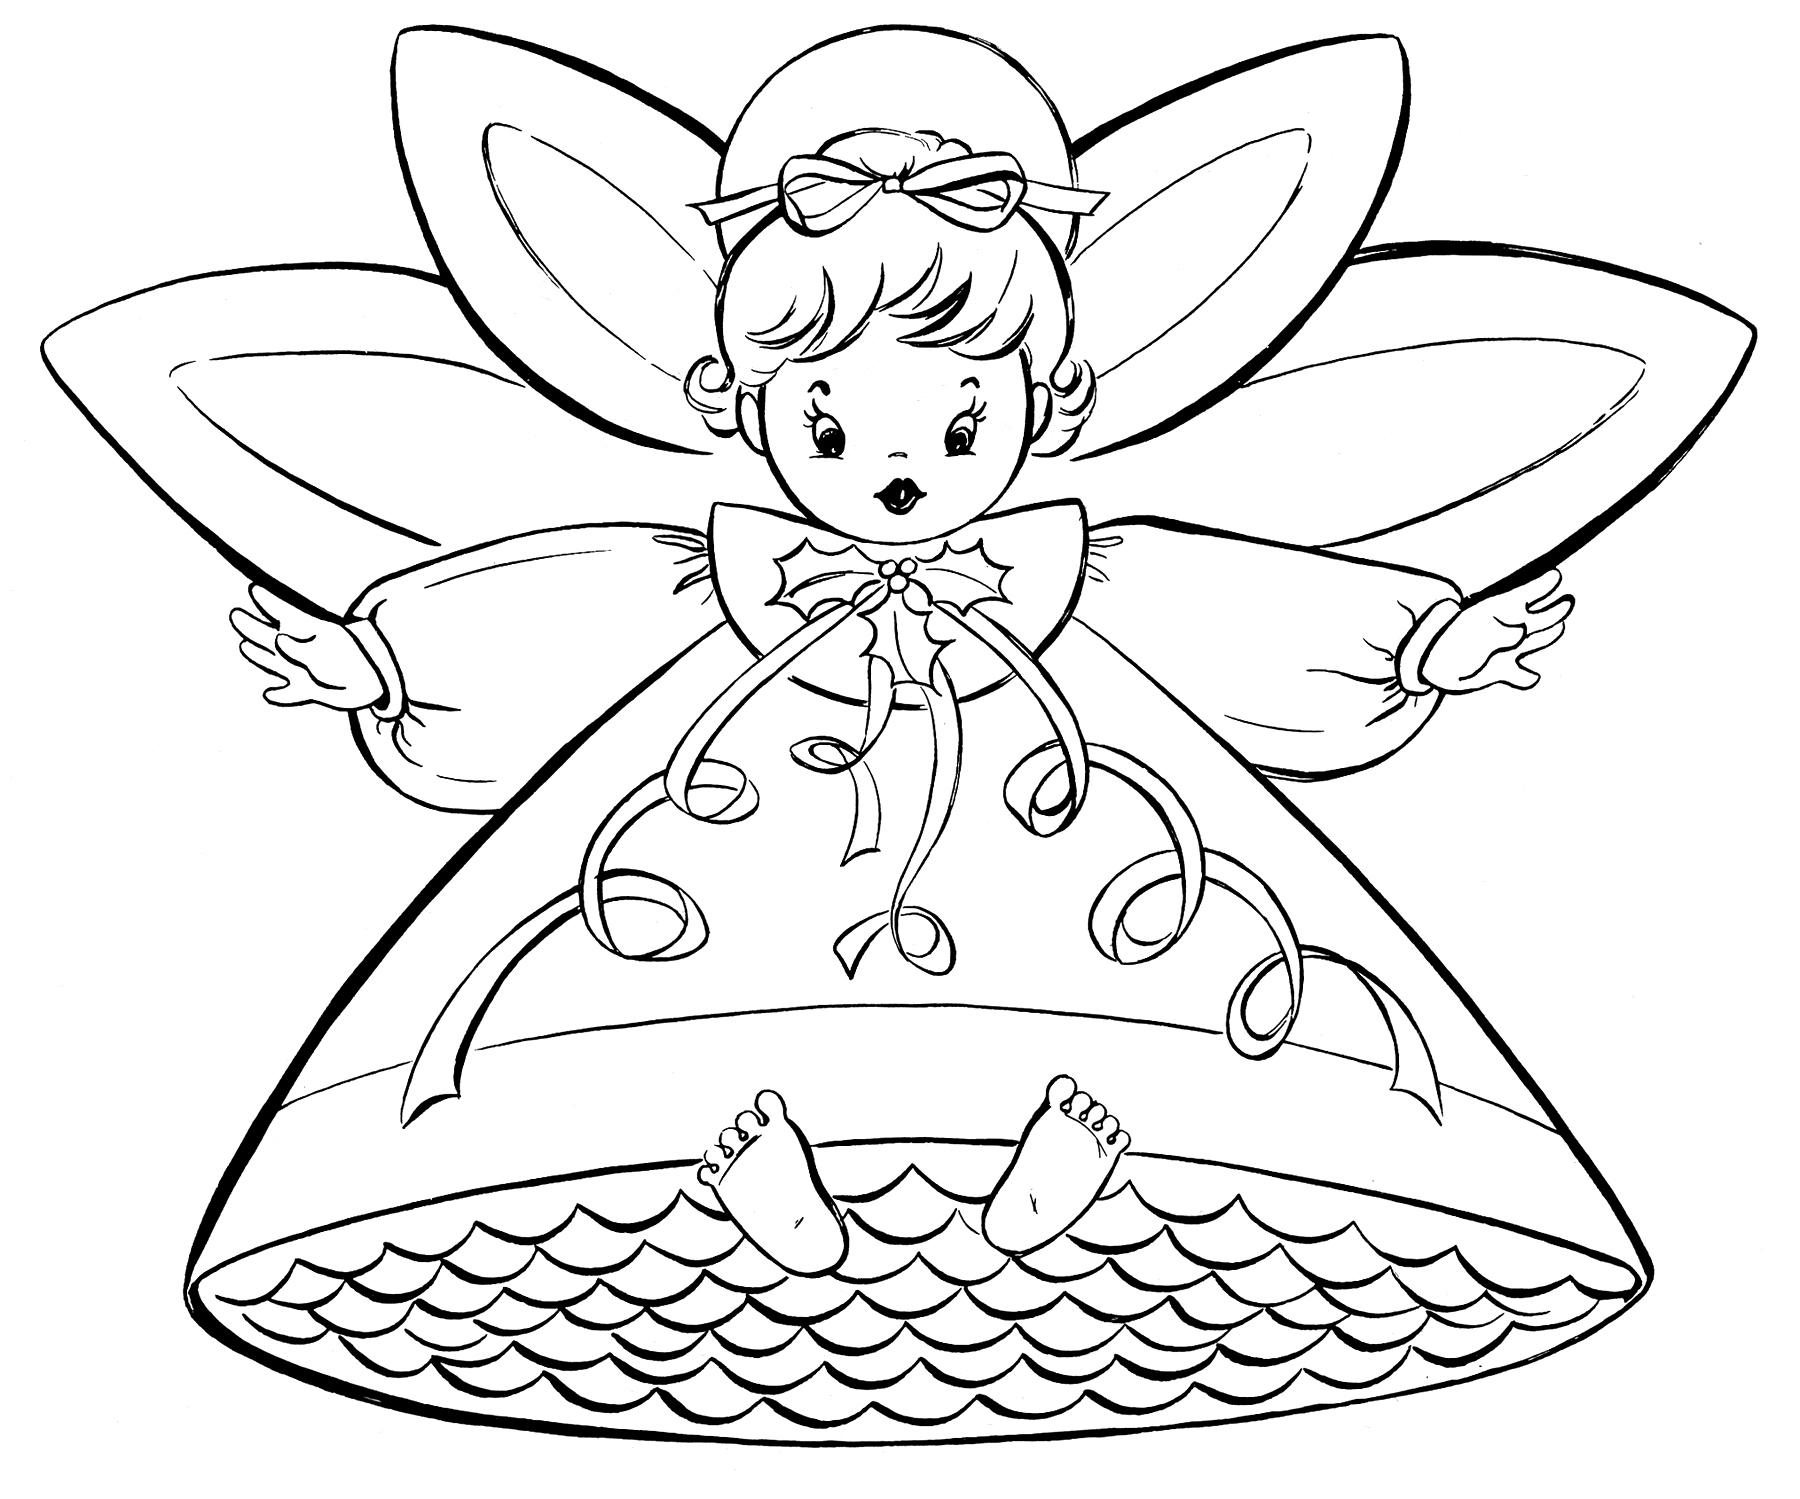 Christmas Color Pages For Kids Free Christmas Coloring Pages Retro Angels The Graphics Fairy